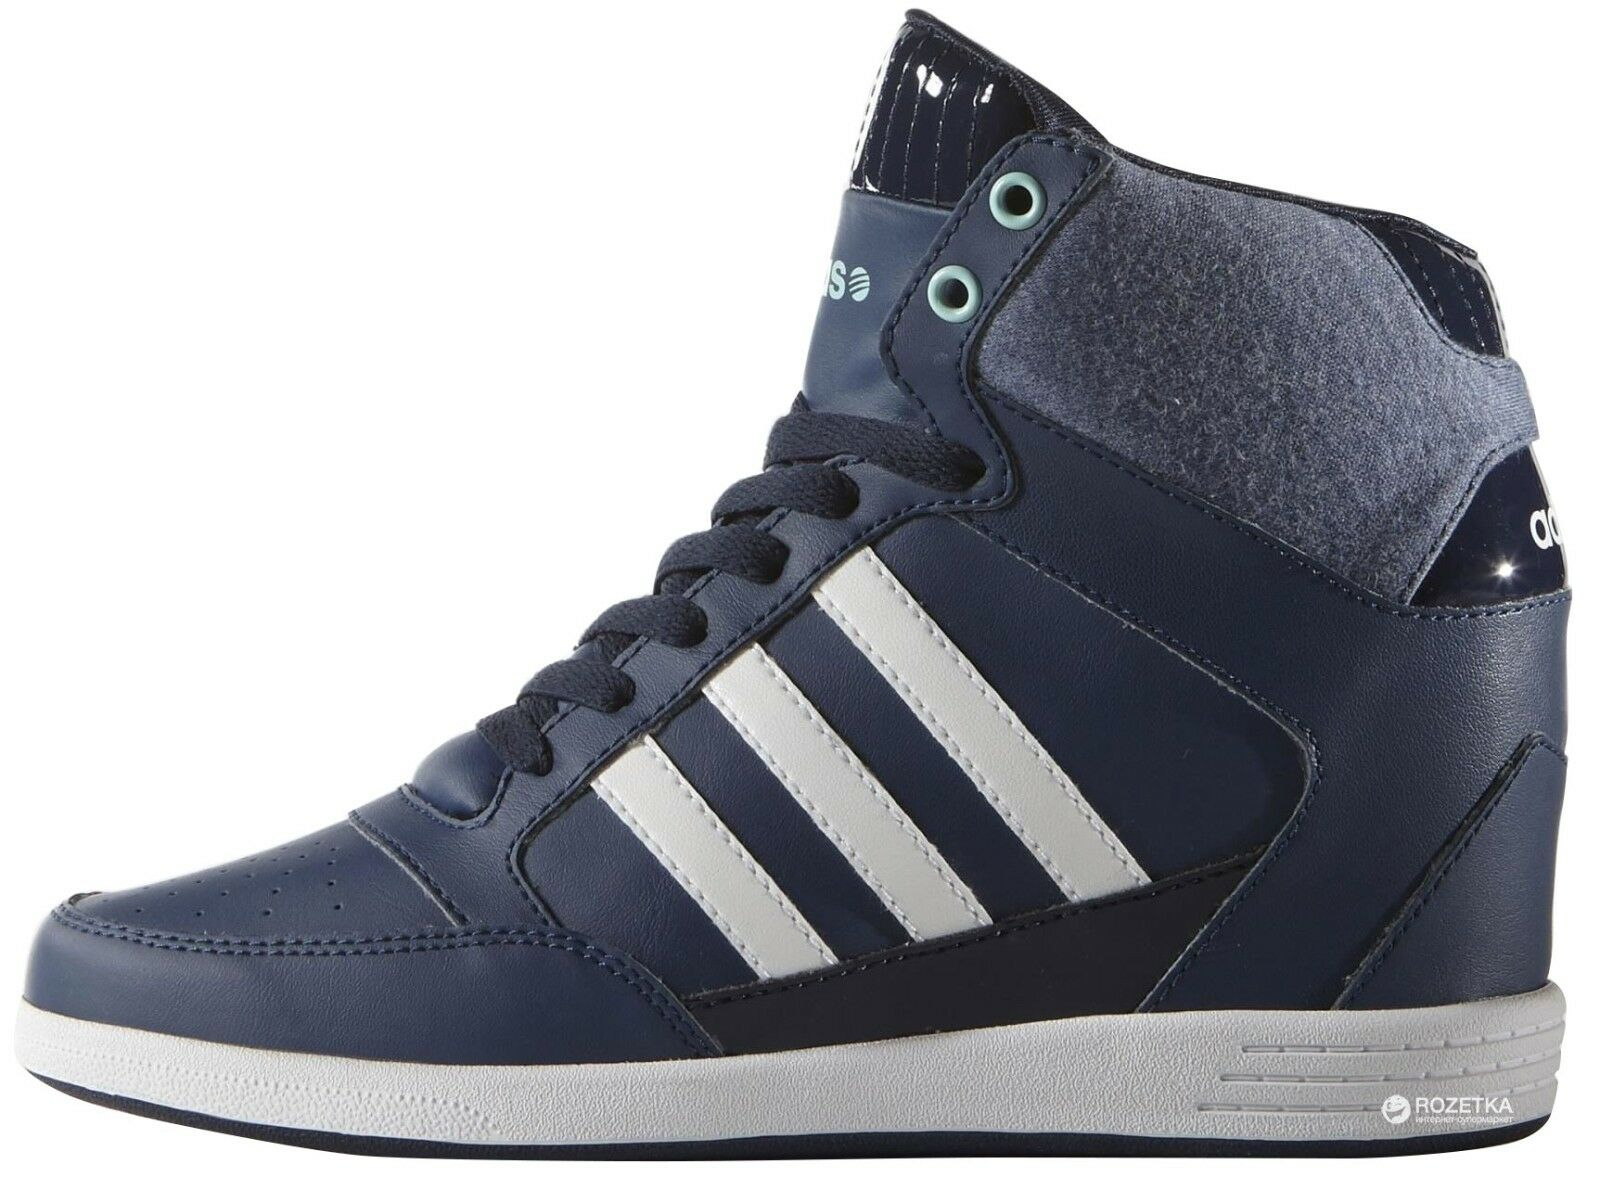 Adidas NEO Super Wedge Women's Sports Sneakers F98649 Hi Top